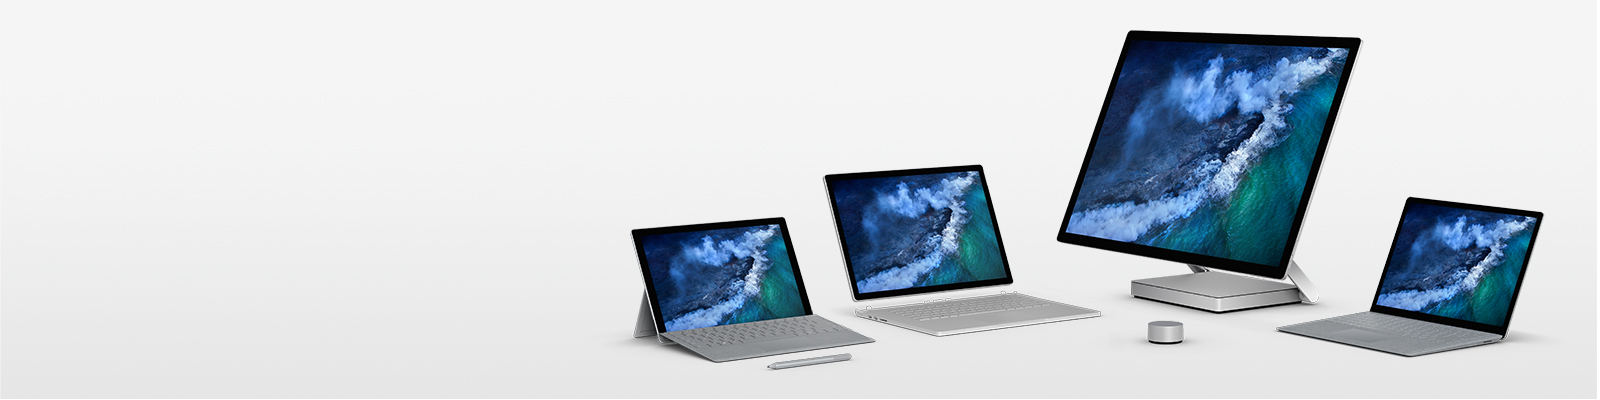 Surface Pro, Surface Laptop, Surface Book 2 and Surface Studio shown with Surface Pen and Surface Dial